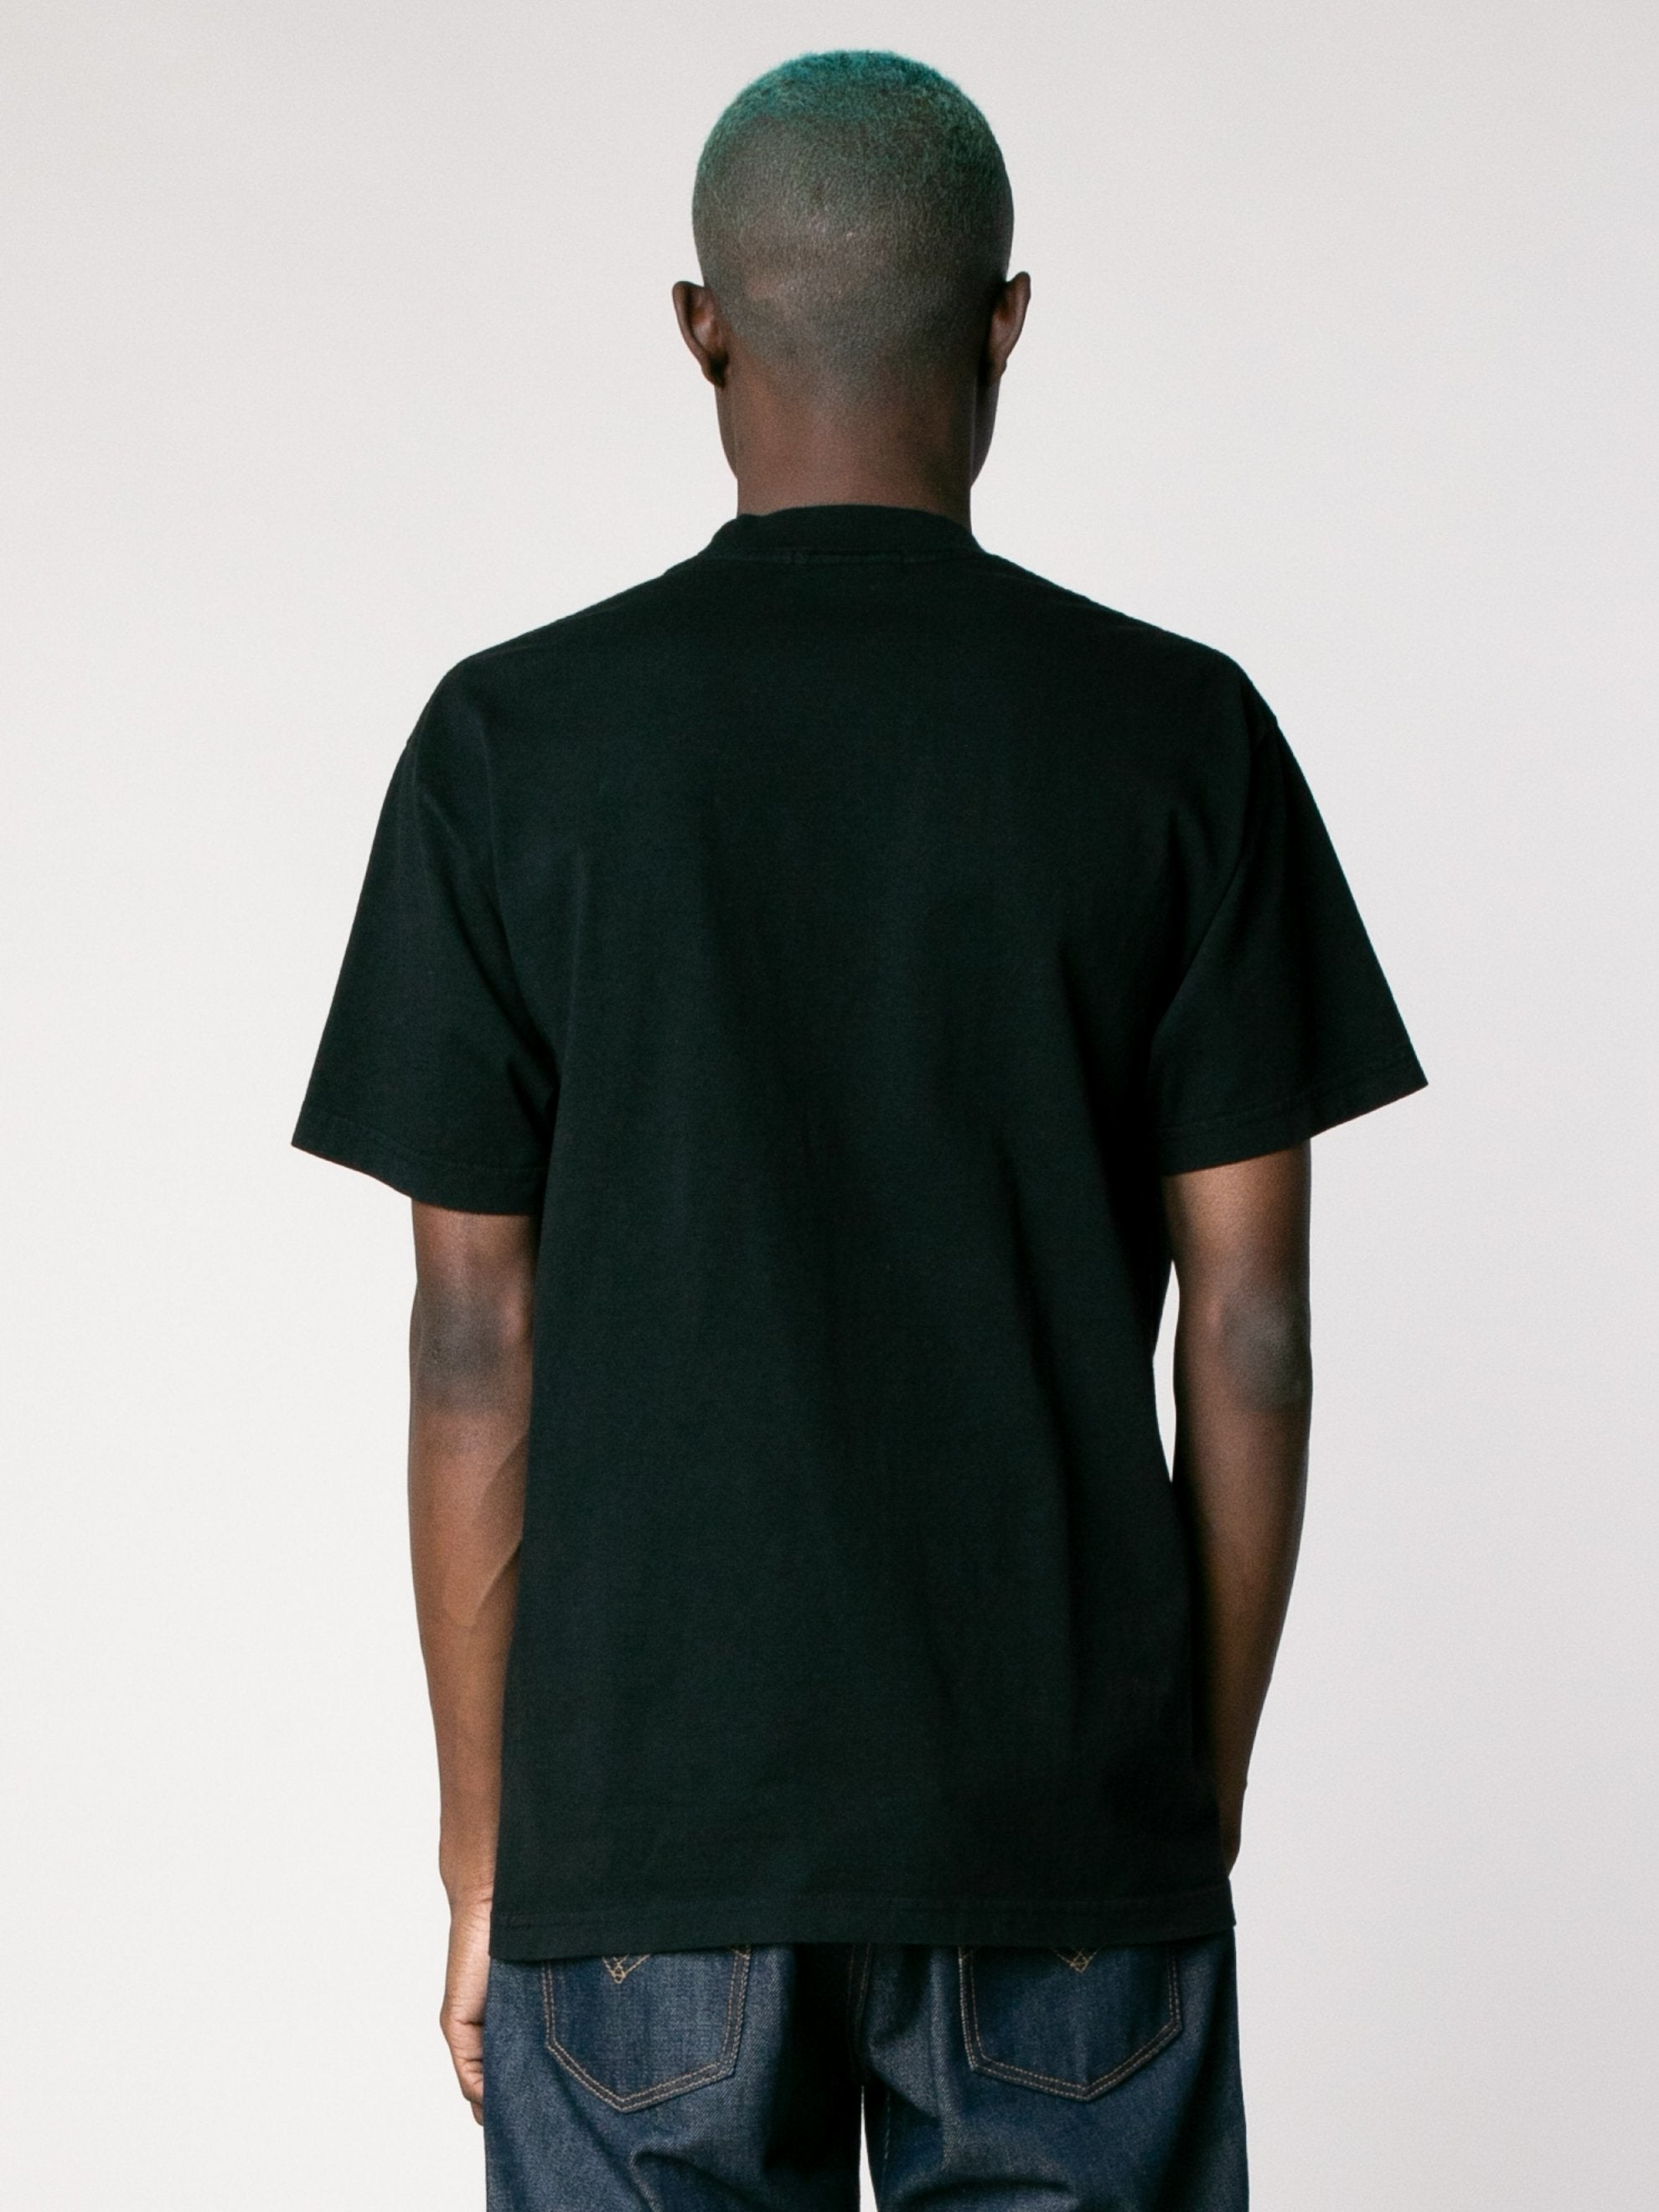 Factory Dealer S/S T-Shirt